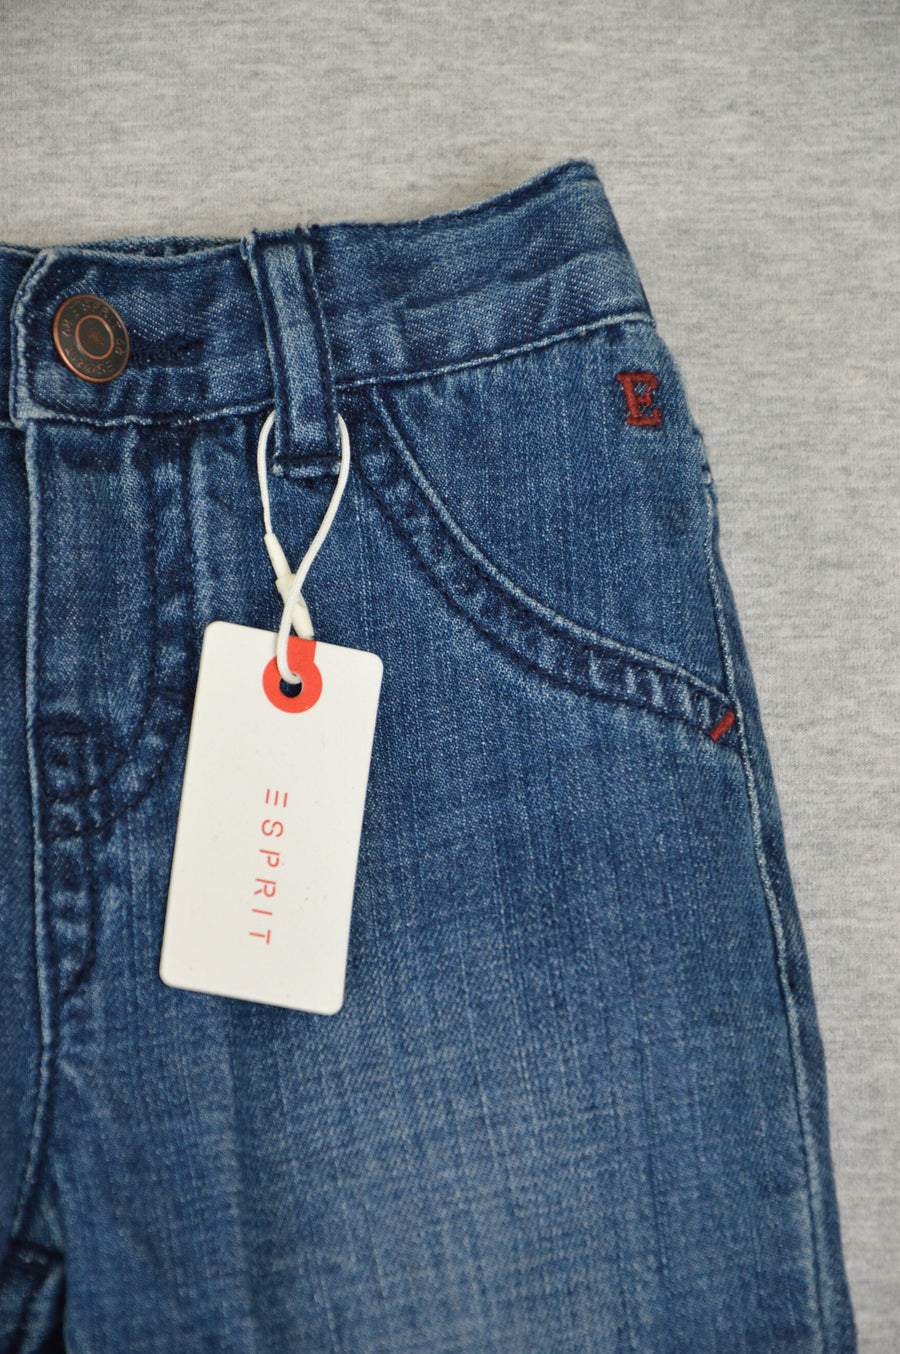 Esprit - brand new - fully lined jeans, size 9m